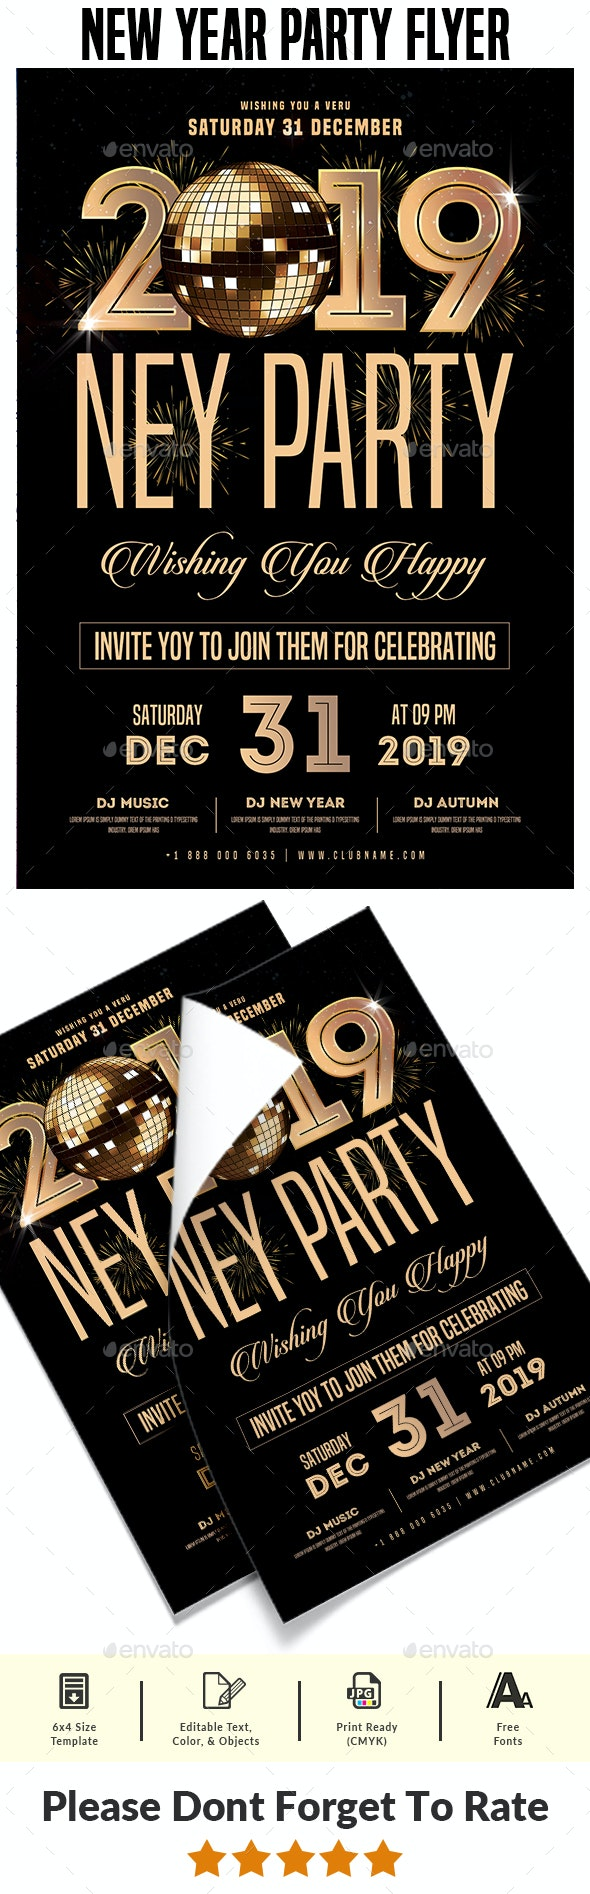 New Year Party Flyer - Events Flyers